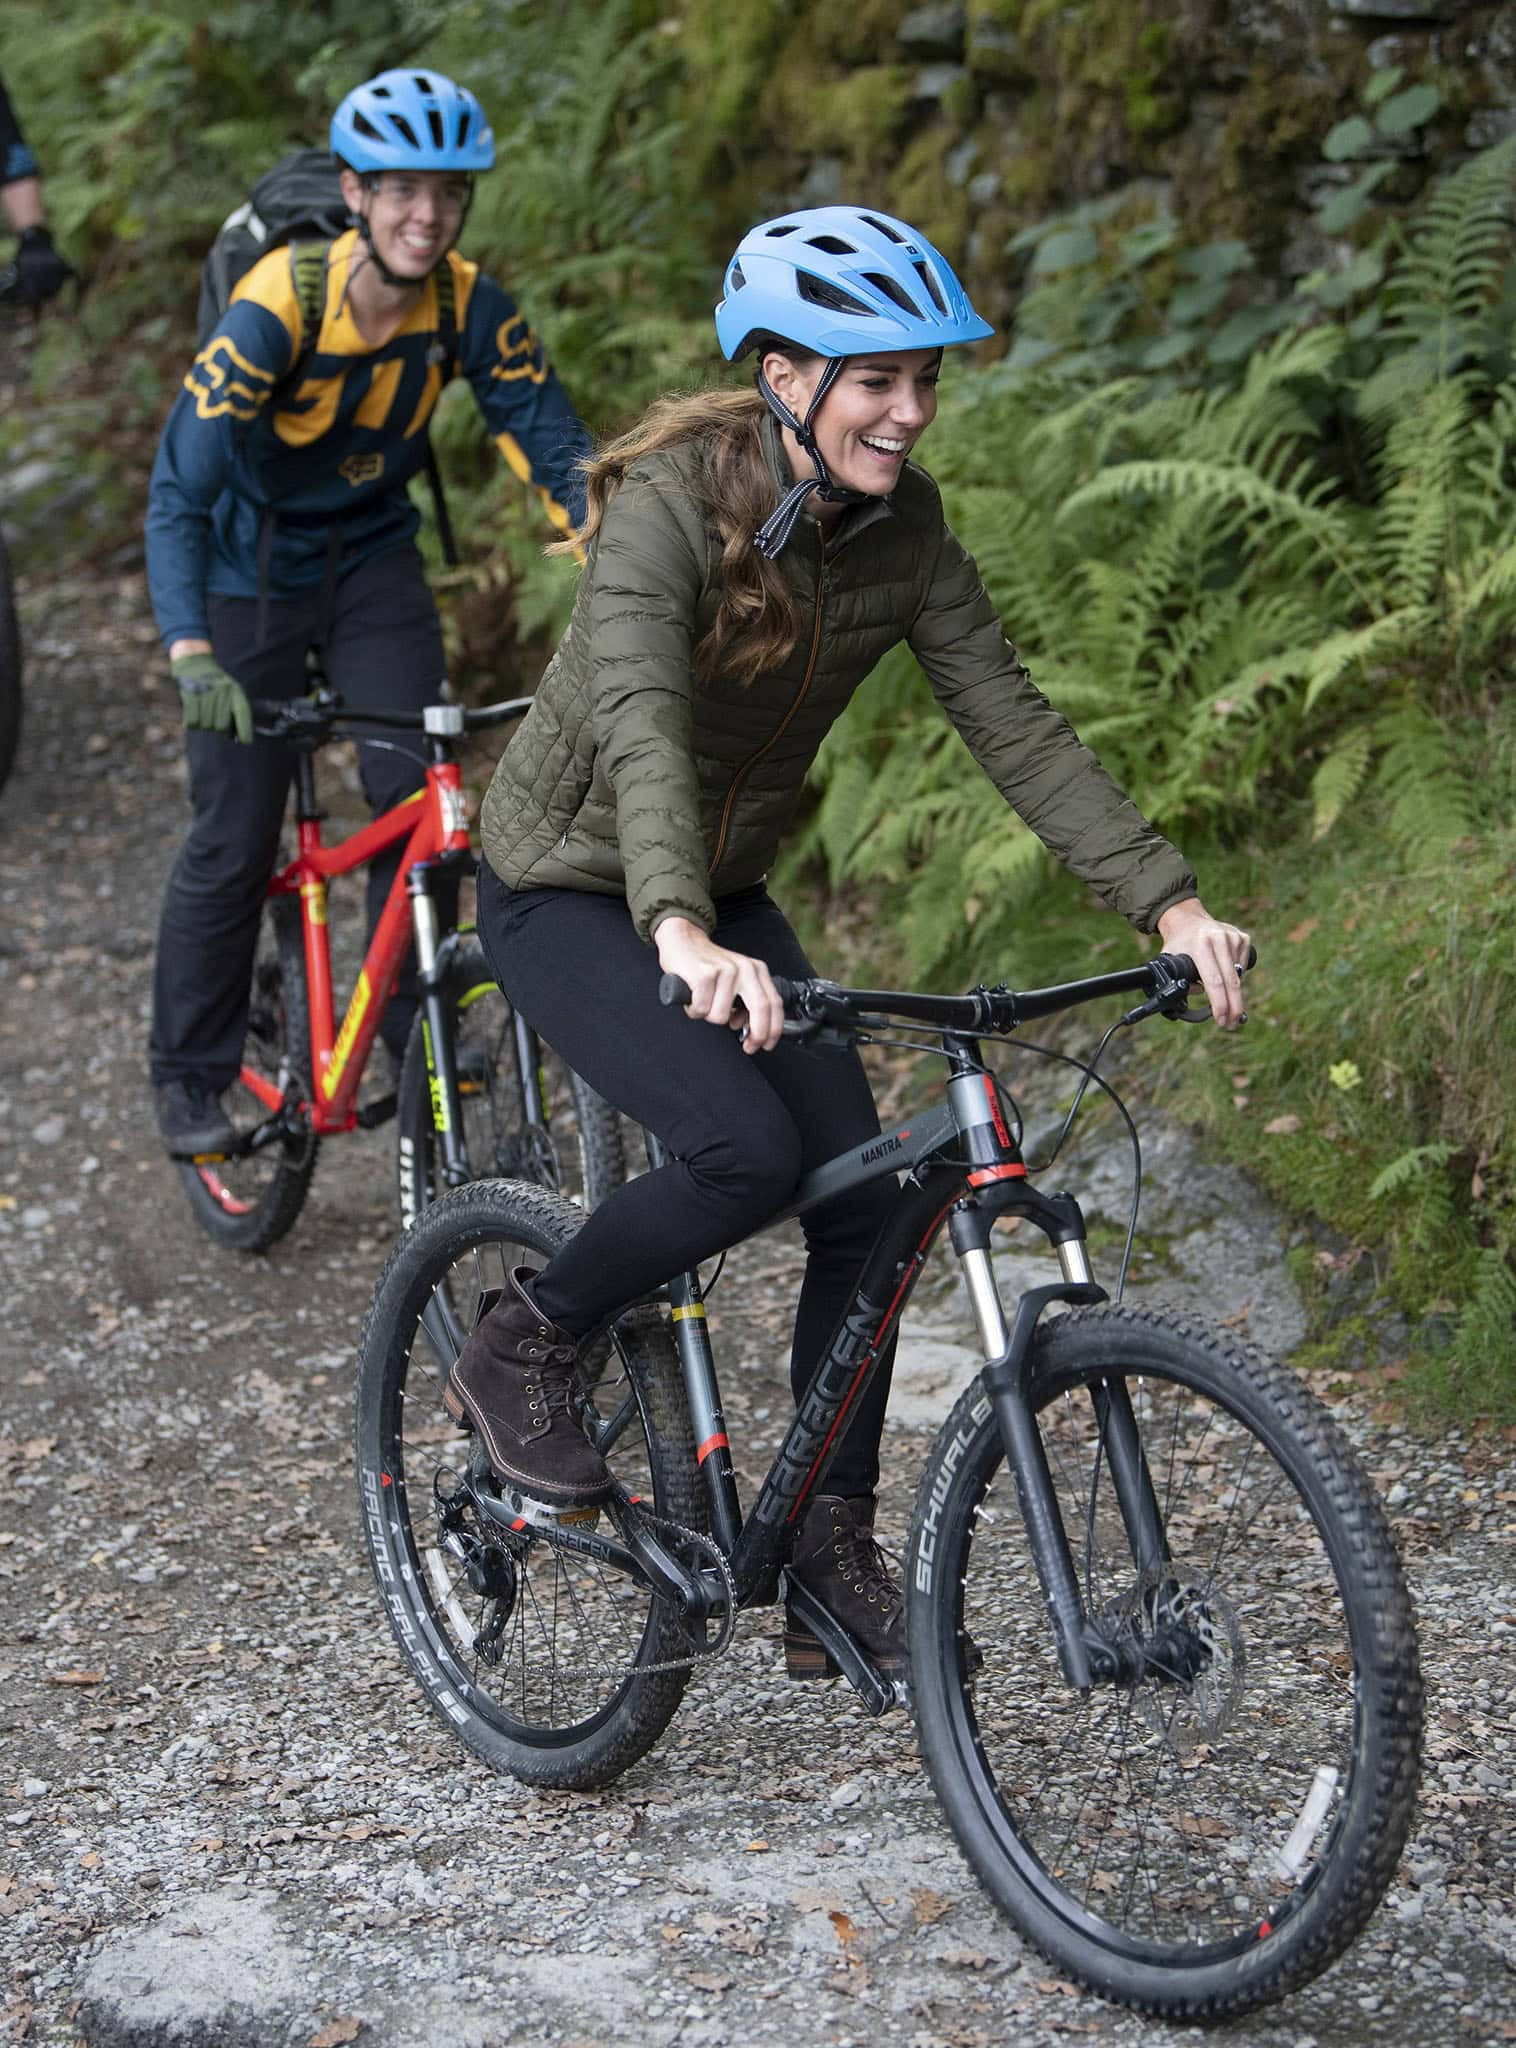 Duchess of Cambridge, Kate Middleton goes mountain biking at the Windermere Adventure Training Centre with RAF Cadets on September 21, 2021